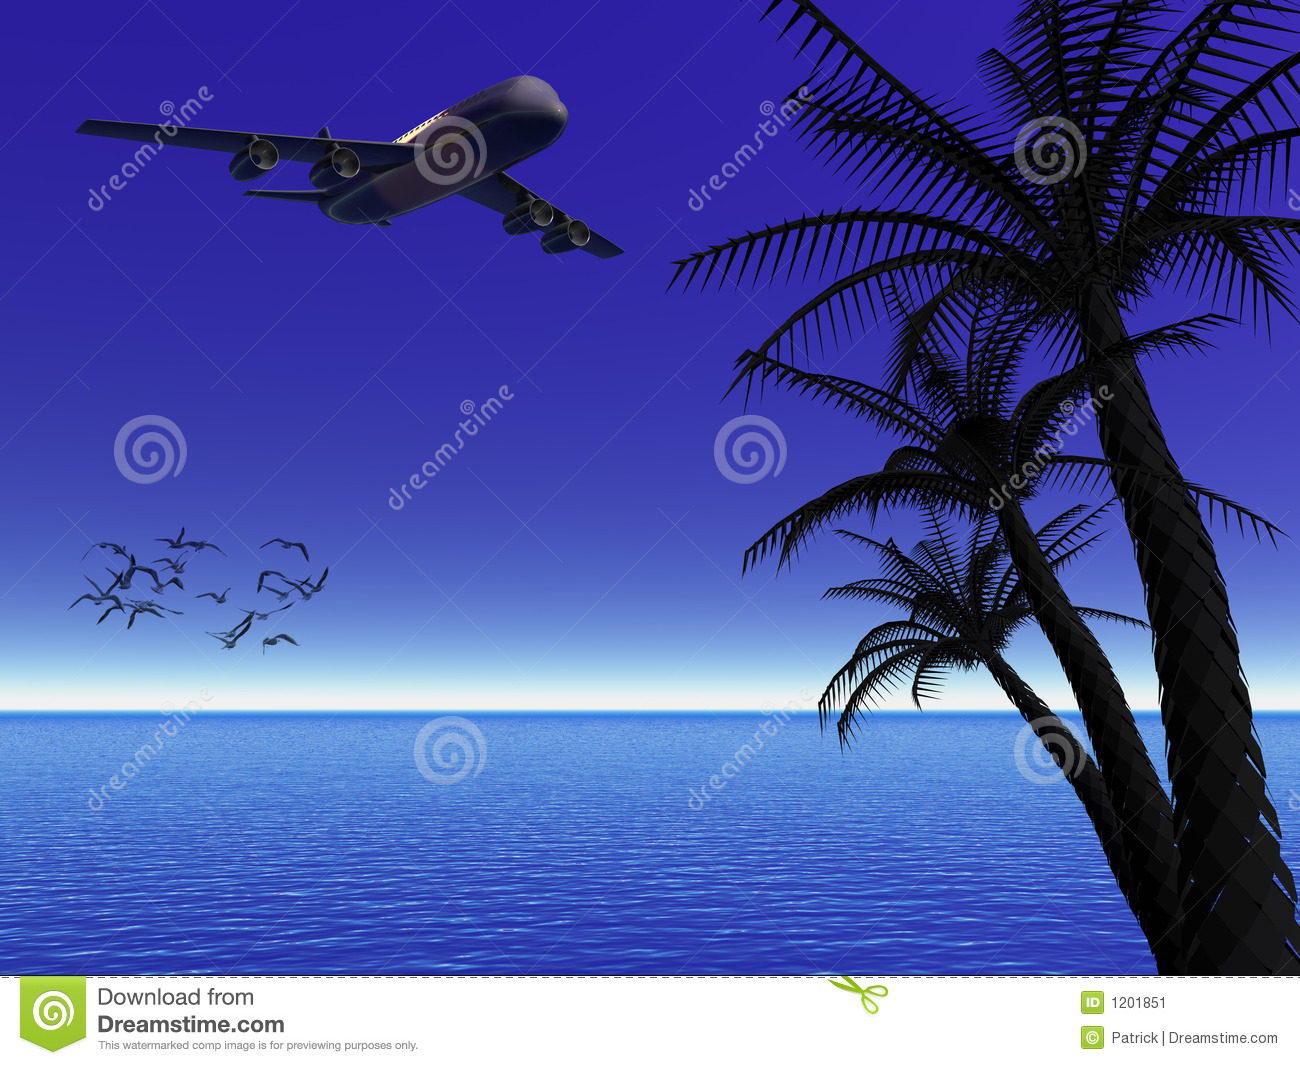 Tropical moon night with airplane.